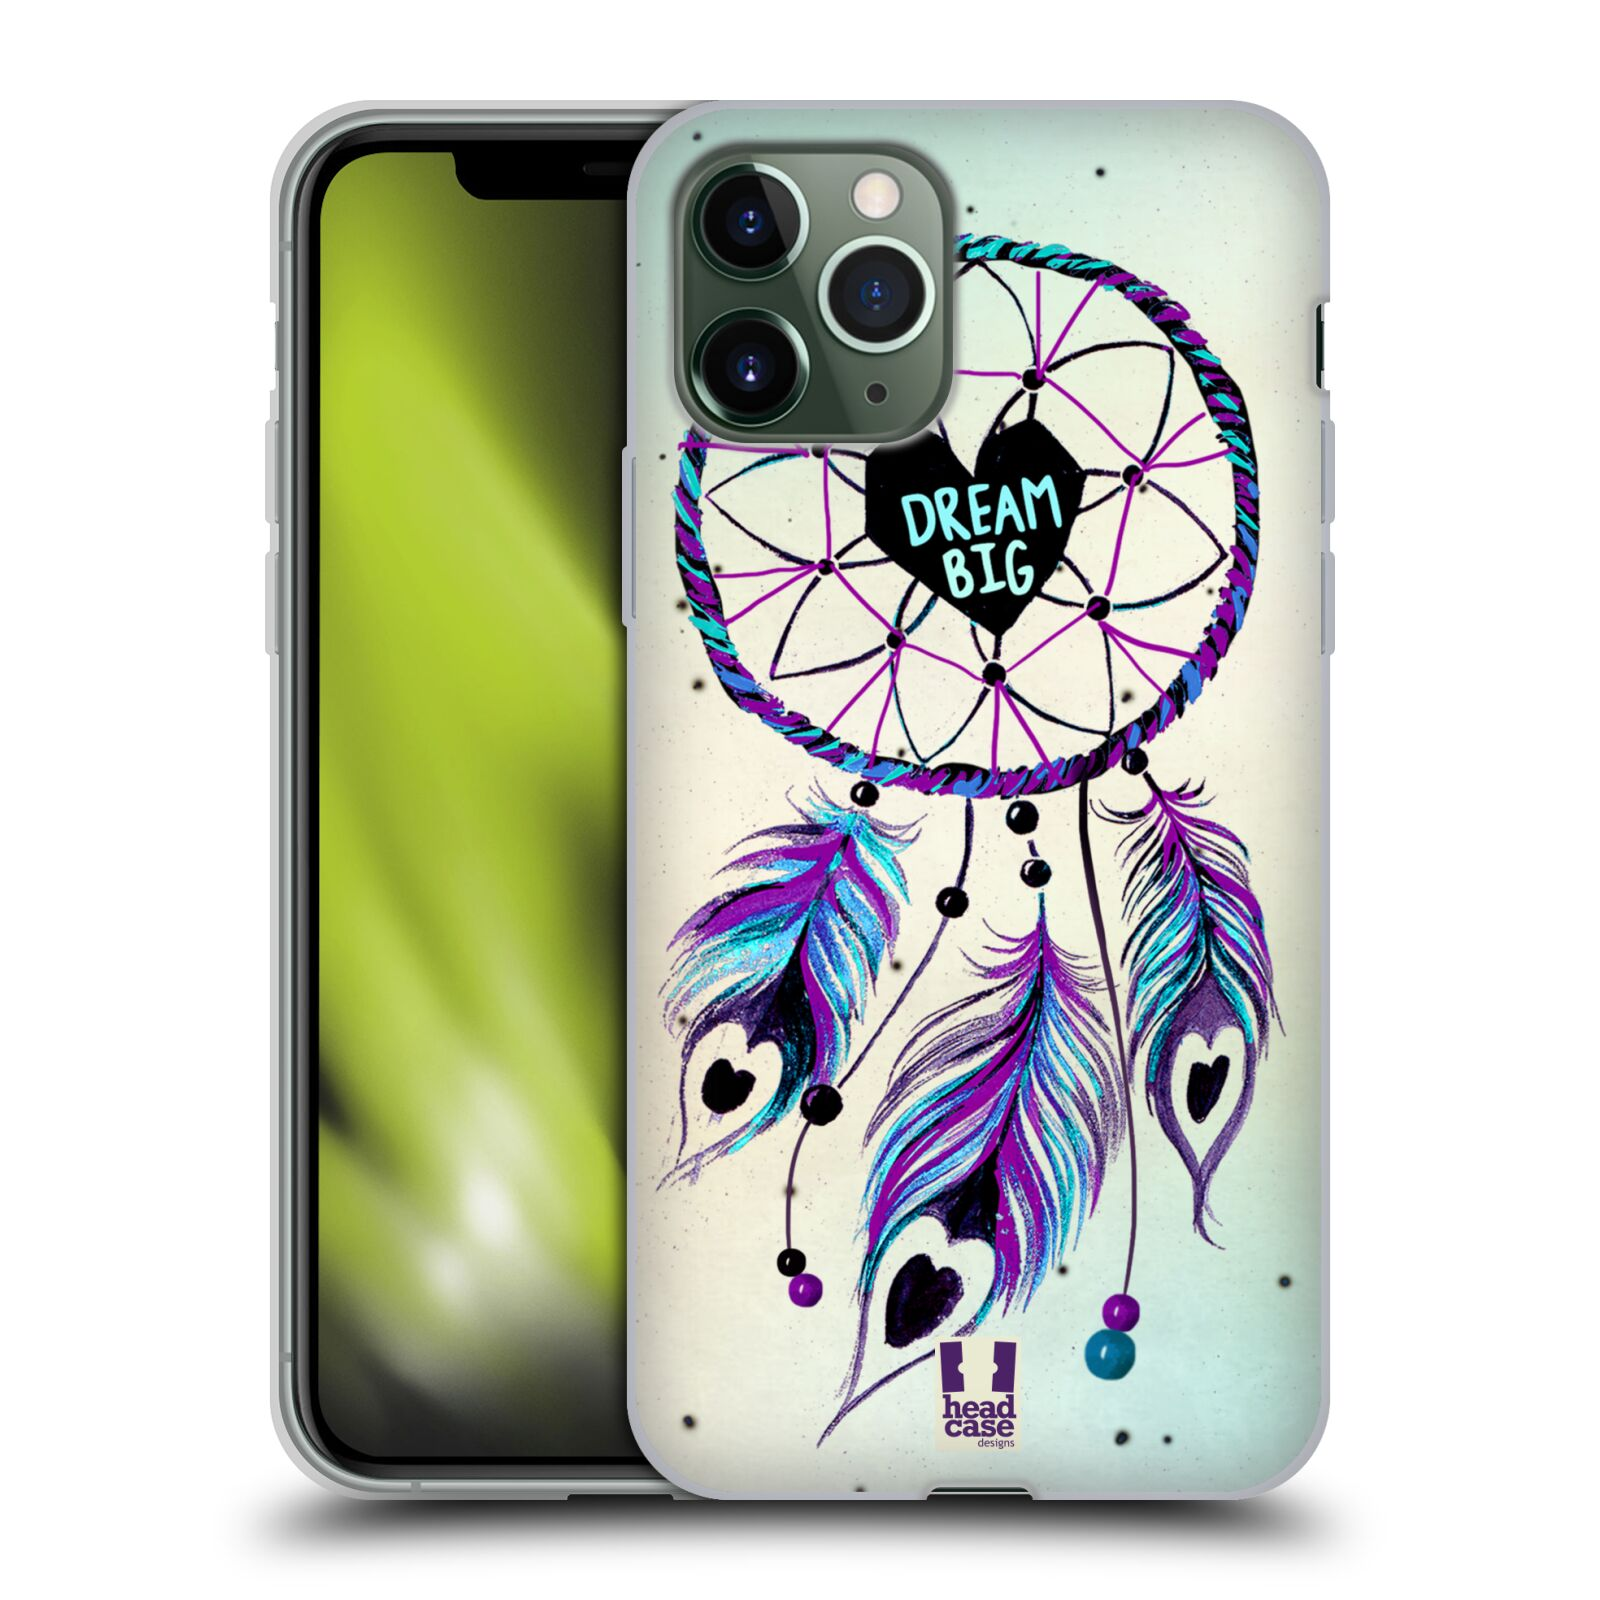 ultra slim kryt iphone 5 | Silikonové pouzdro na mobil Apple iPhone 11 Pro - Head Case - Lapač Assorted Dream Big Srdce